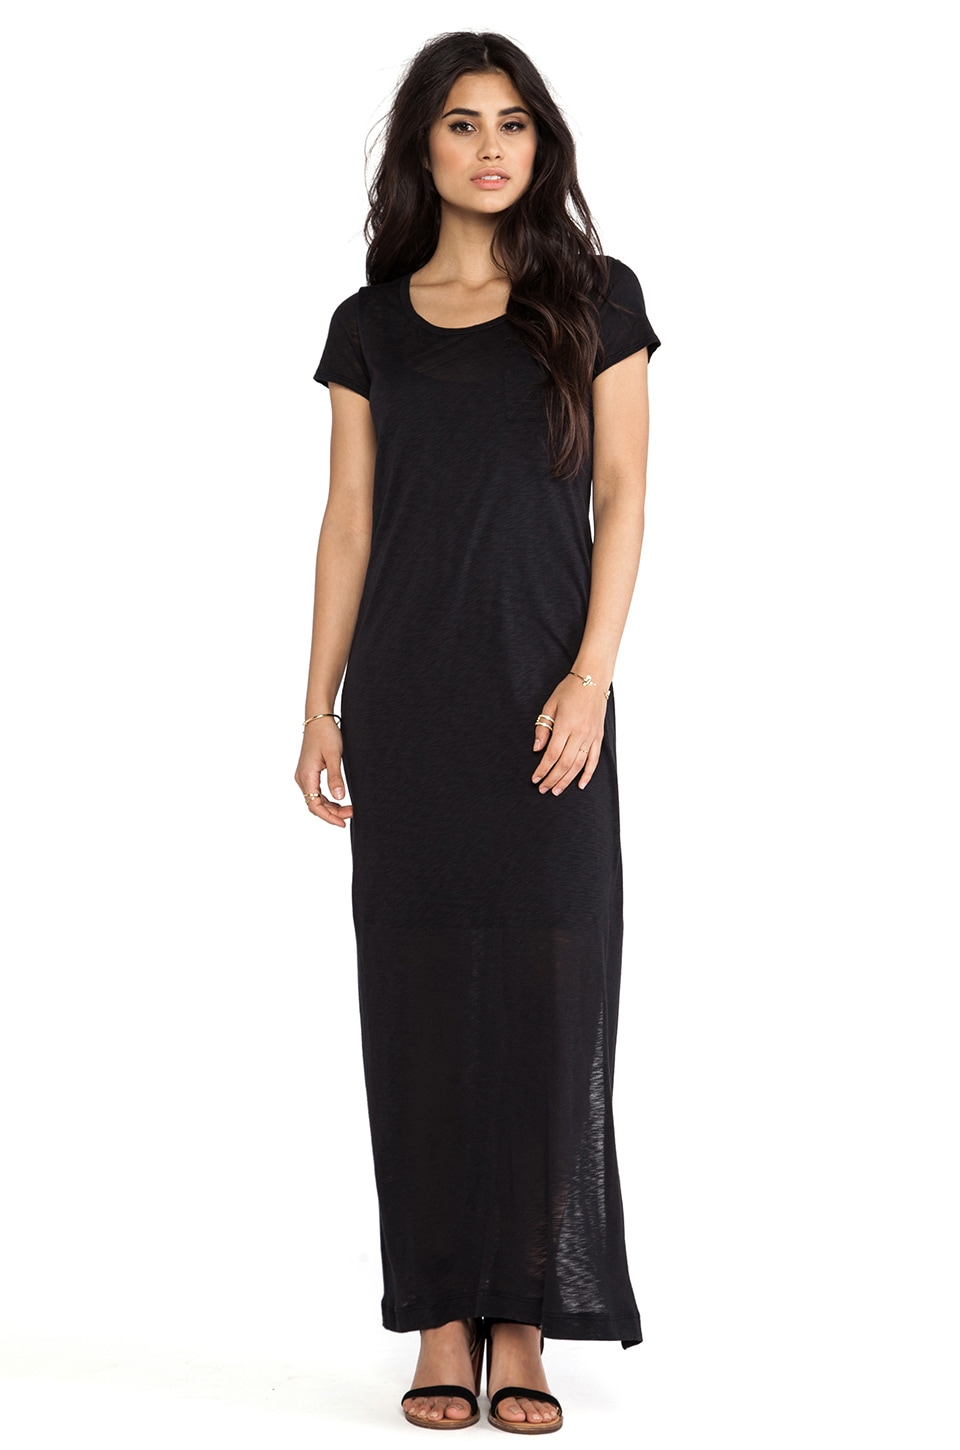 Splendid Always Tee Maxi Dress in Black